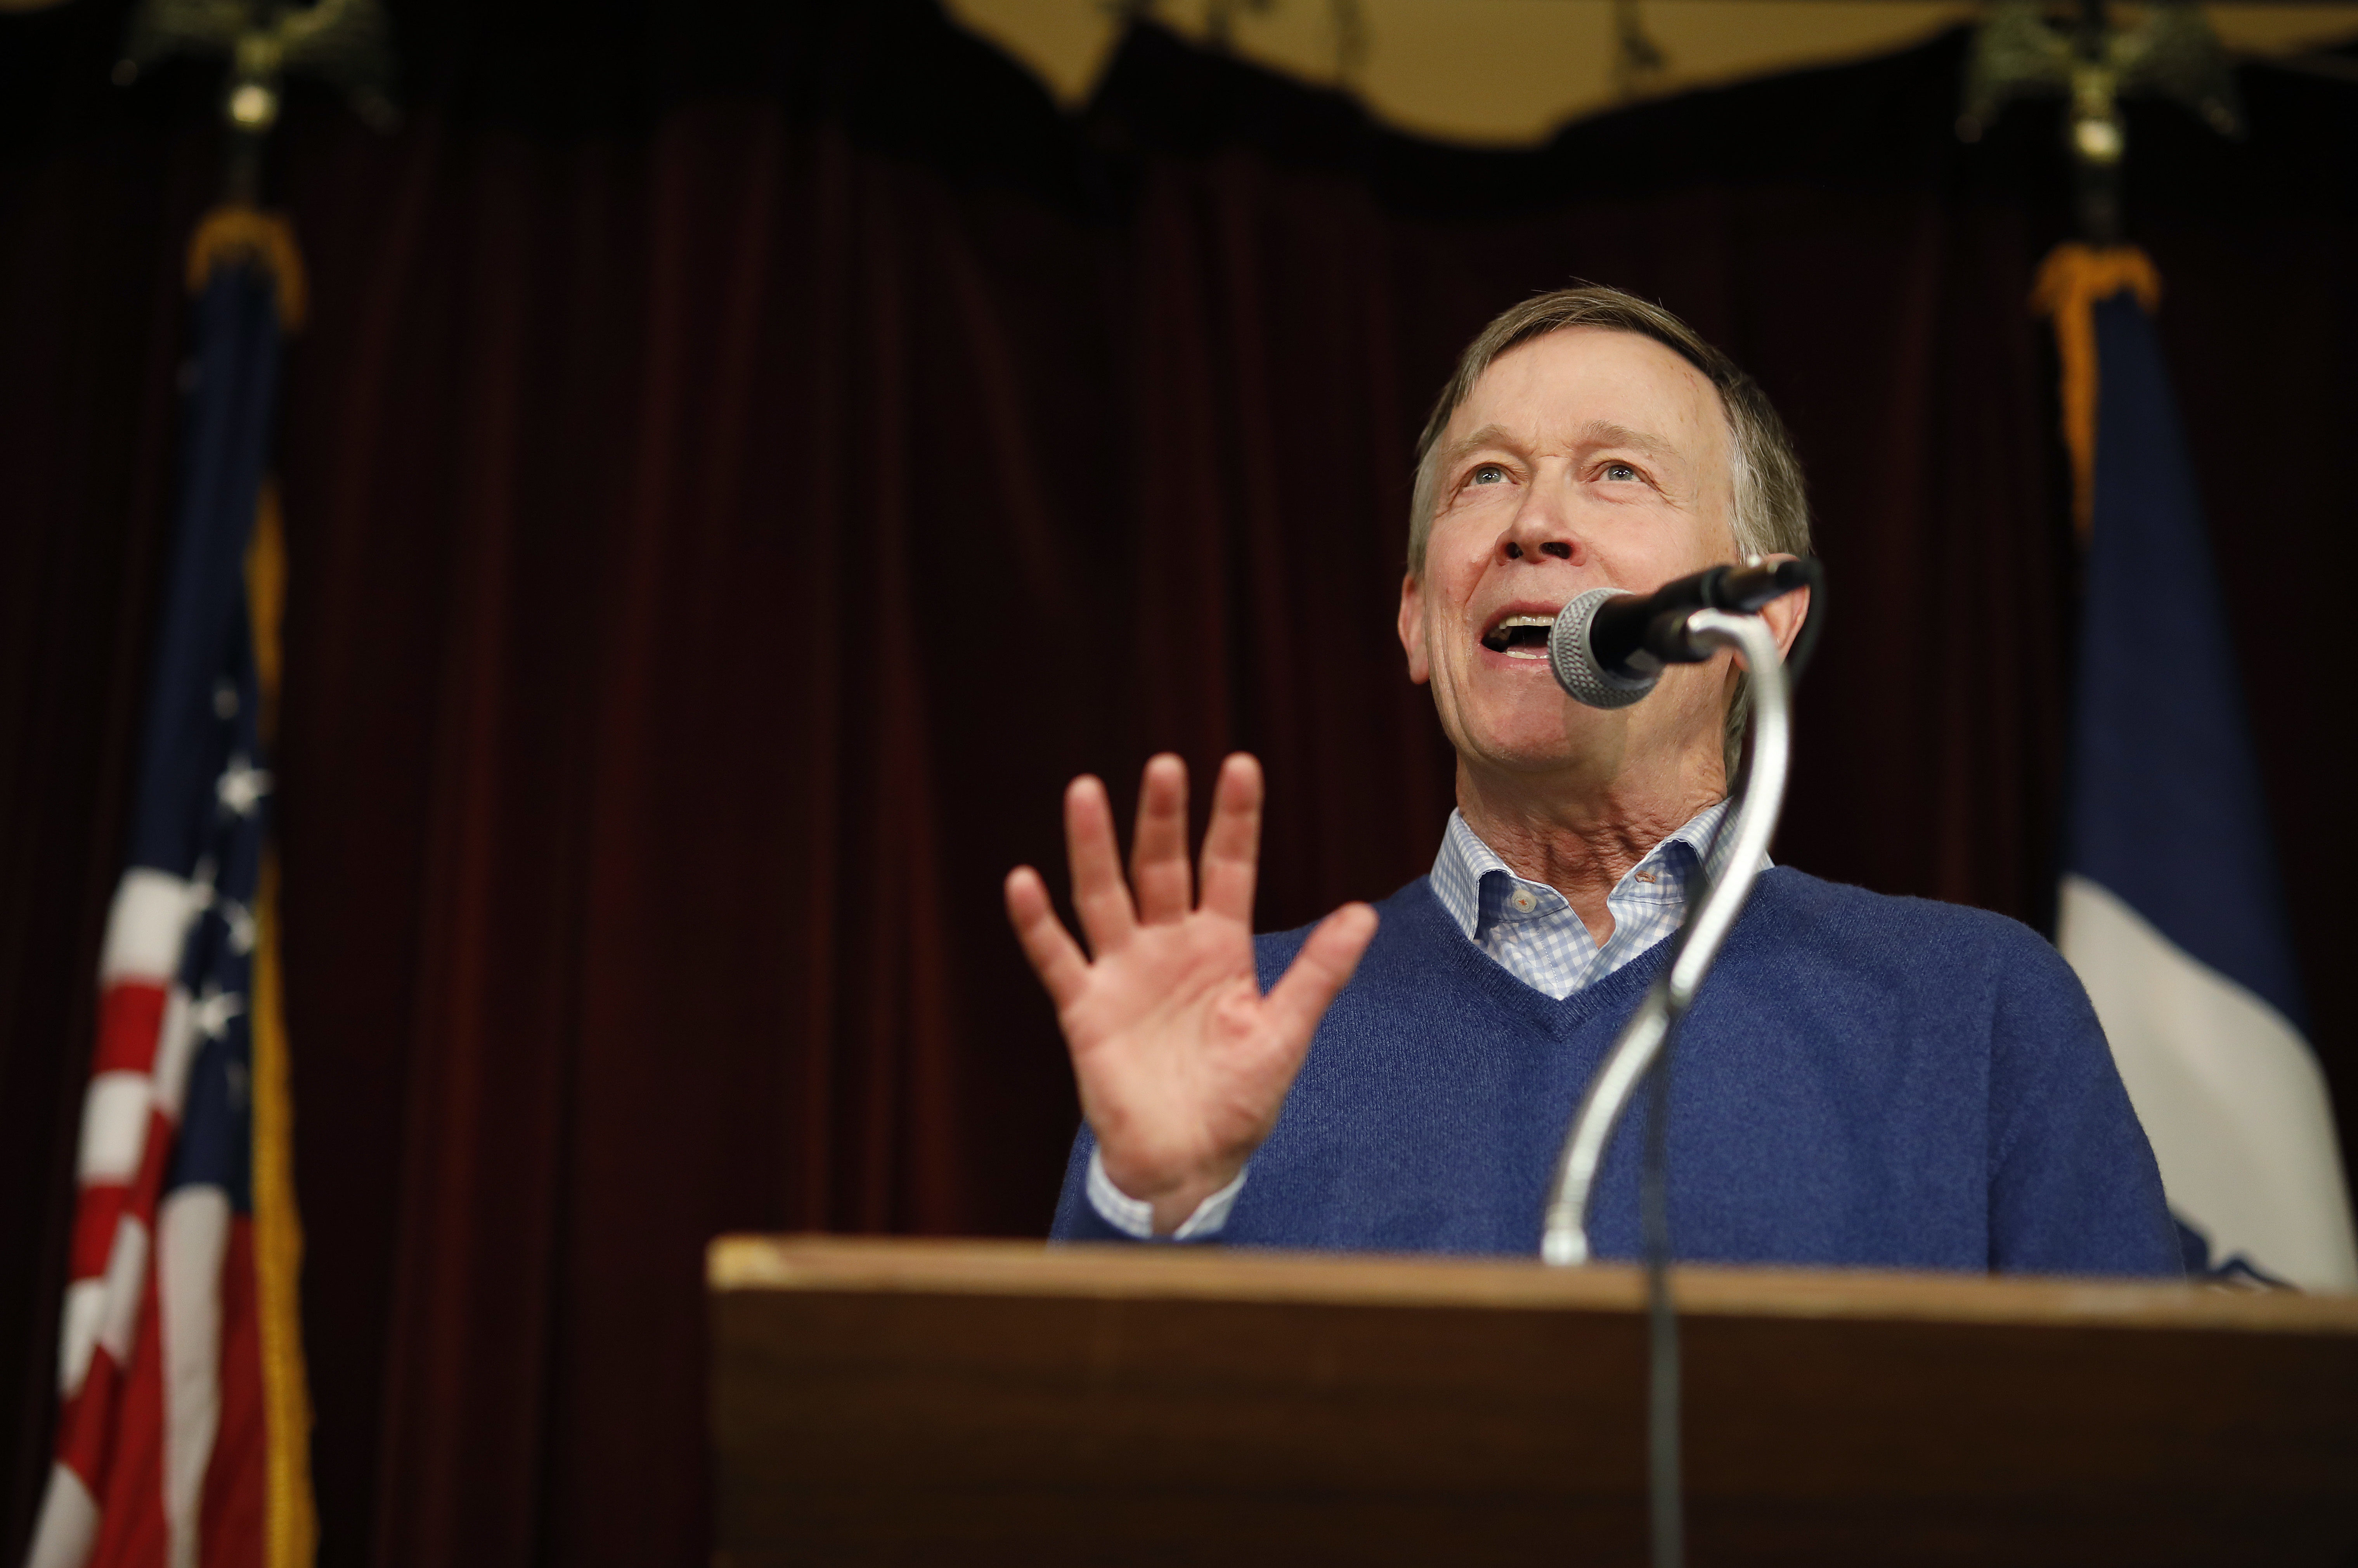 Former Colorado Gov. John Hickenlooper speaks at the Story County Democrats Soup Supper, Feb. 23, 2019, in Ames, Iowa.